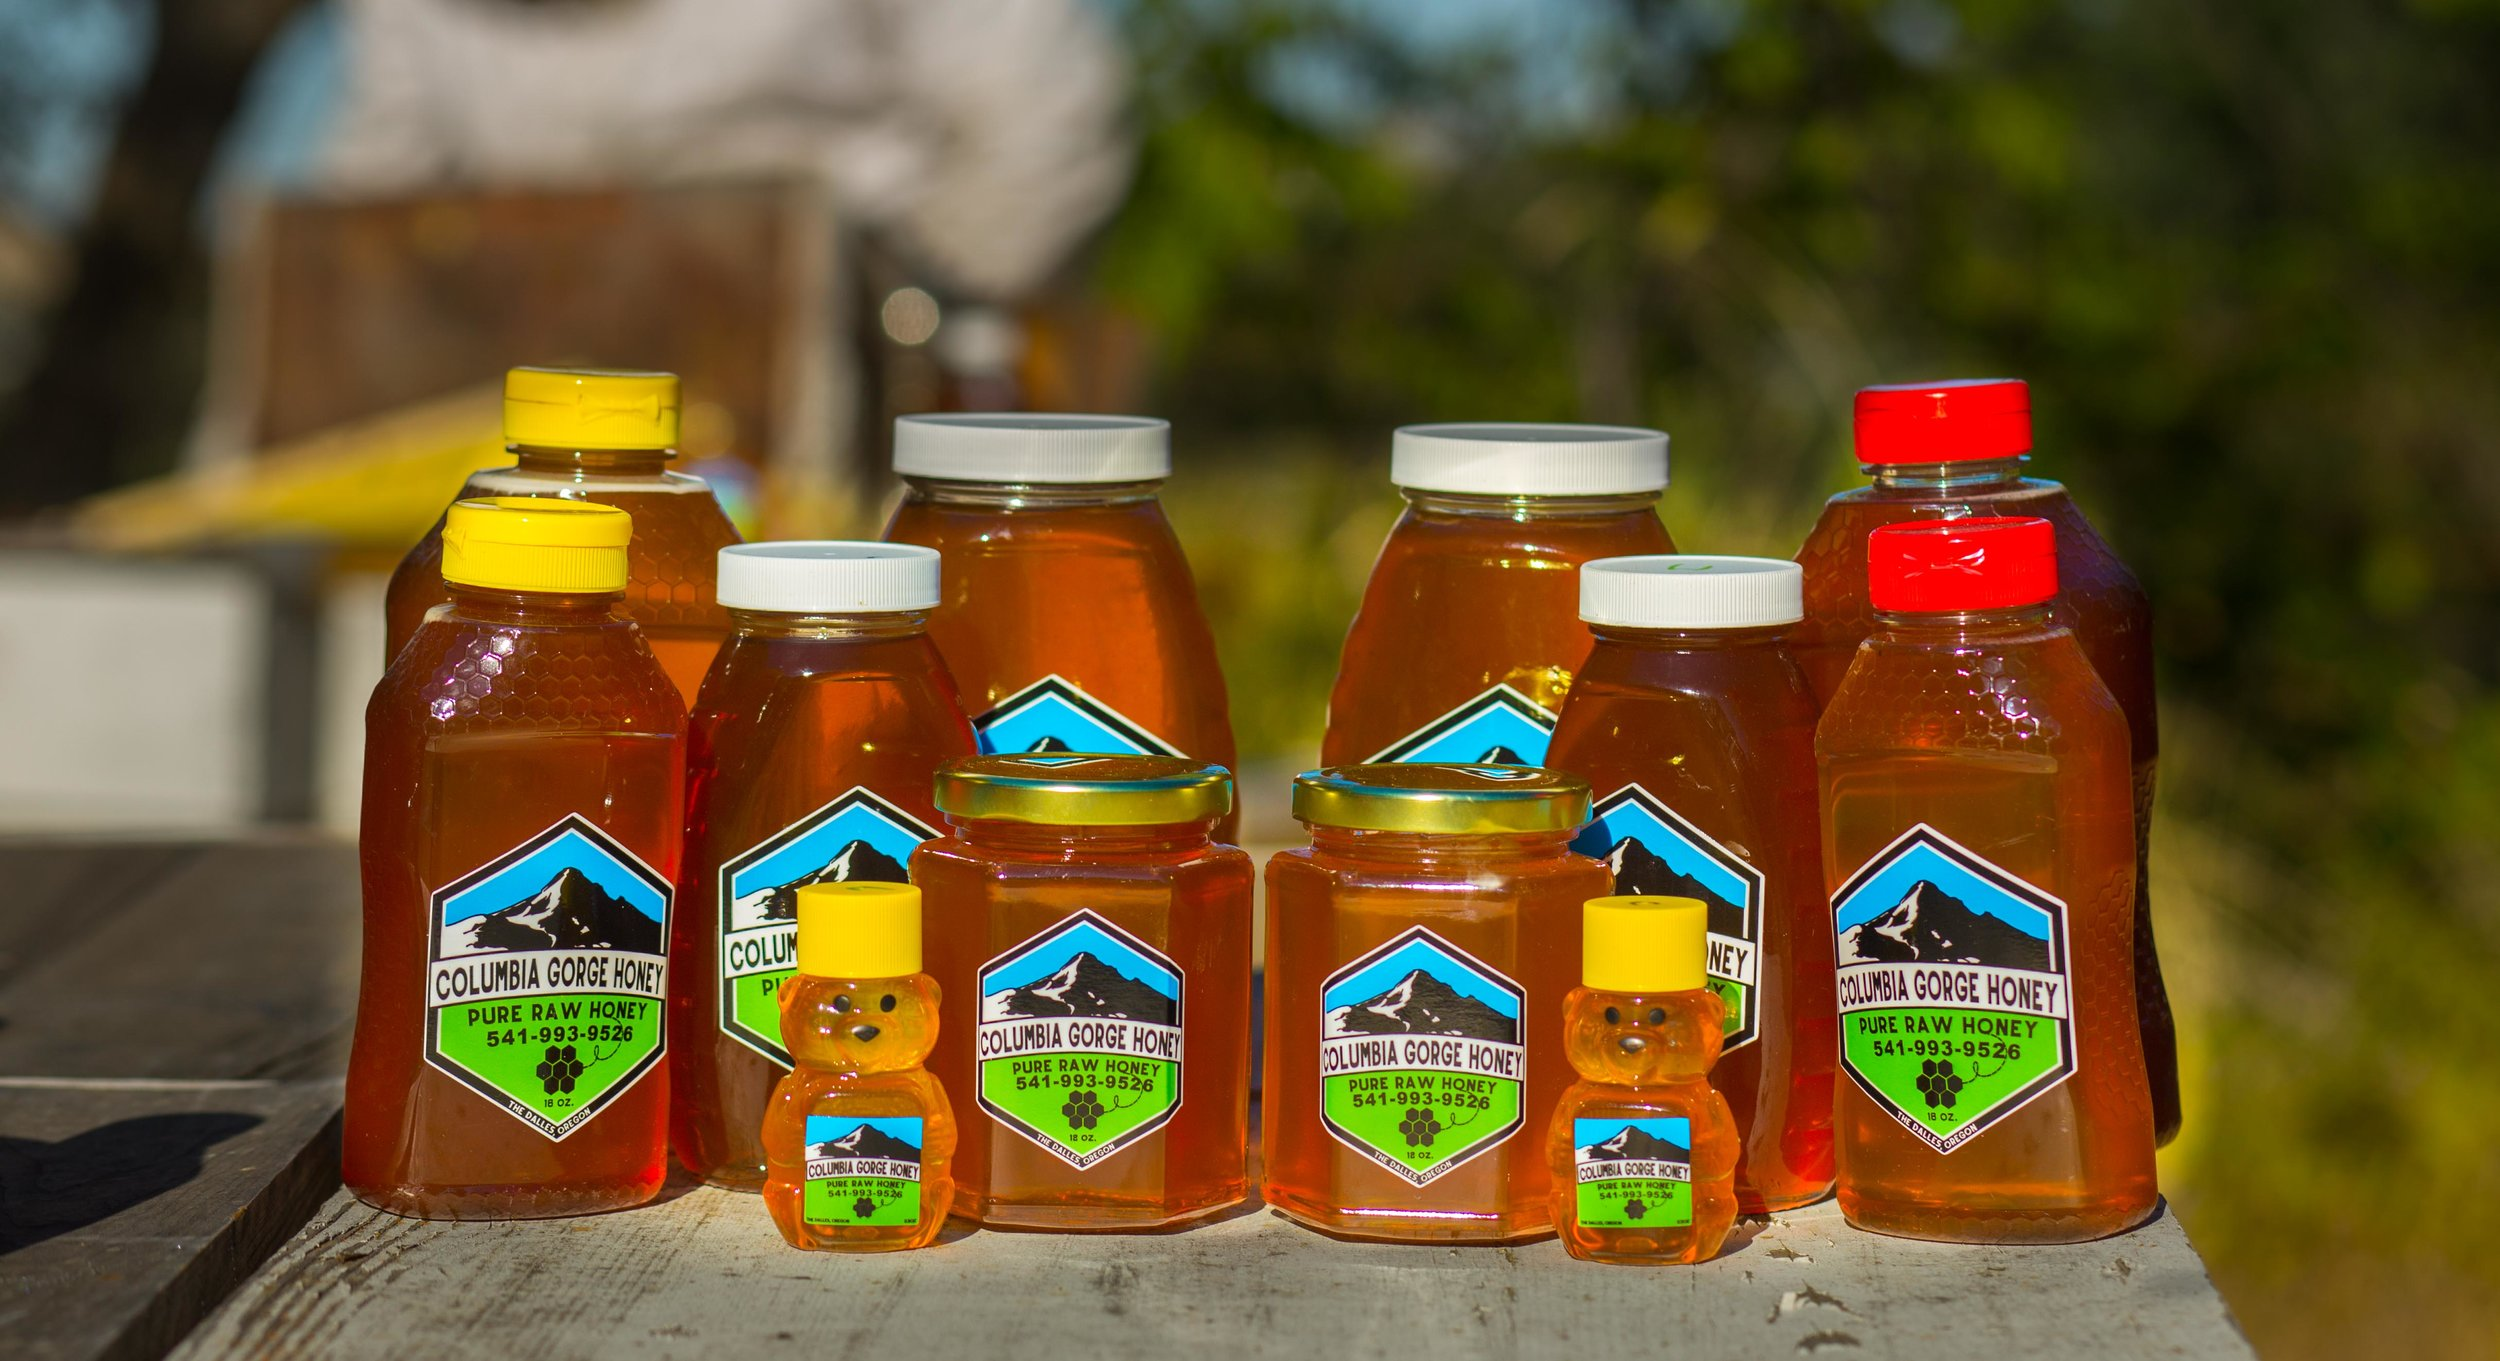 columbia gorge honey the dalles natural bees harvest oregon homegrown local wax honeycomb buzz worthy good foods harvest best honey ever (28 of 36).jpg